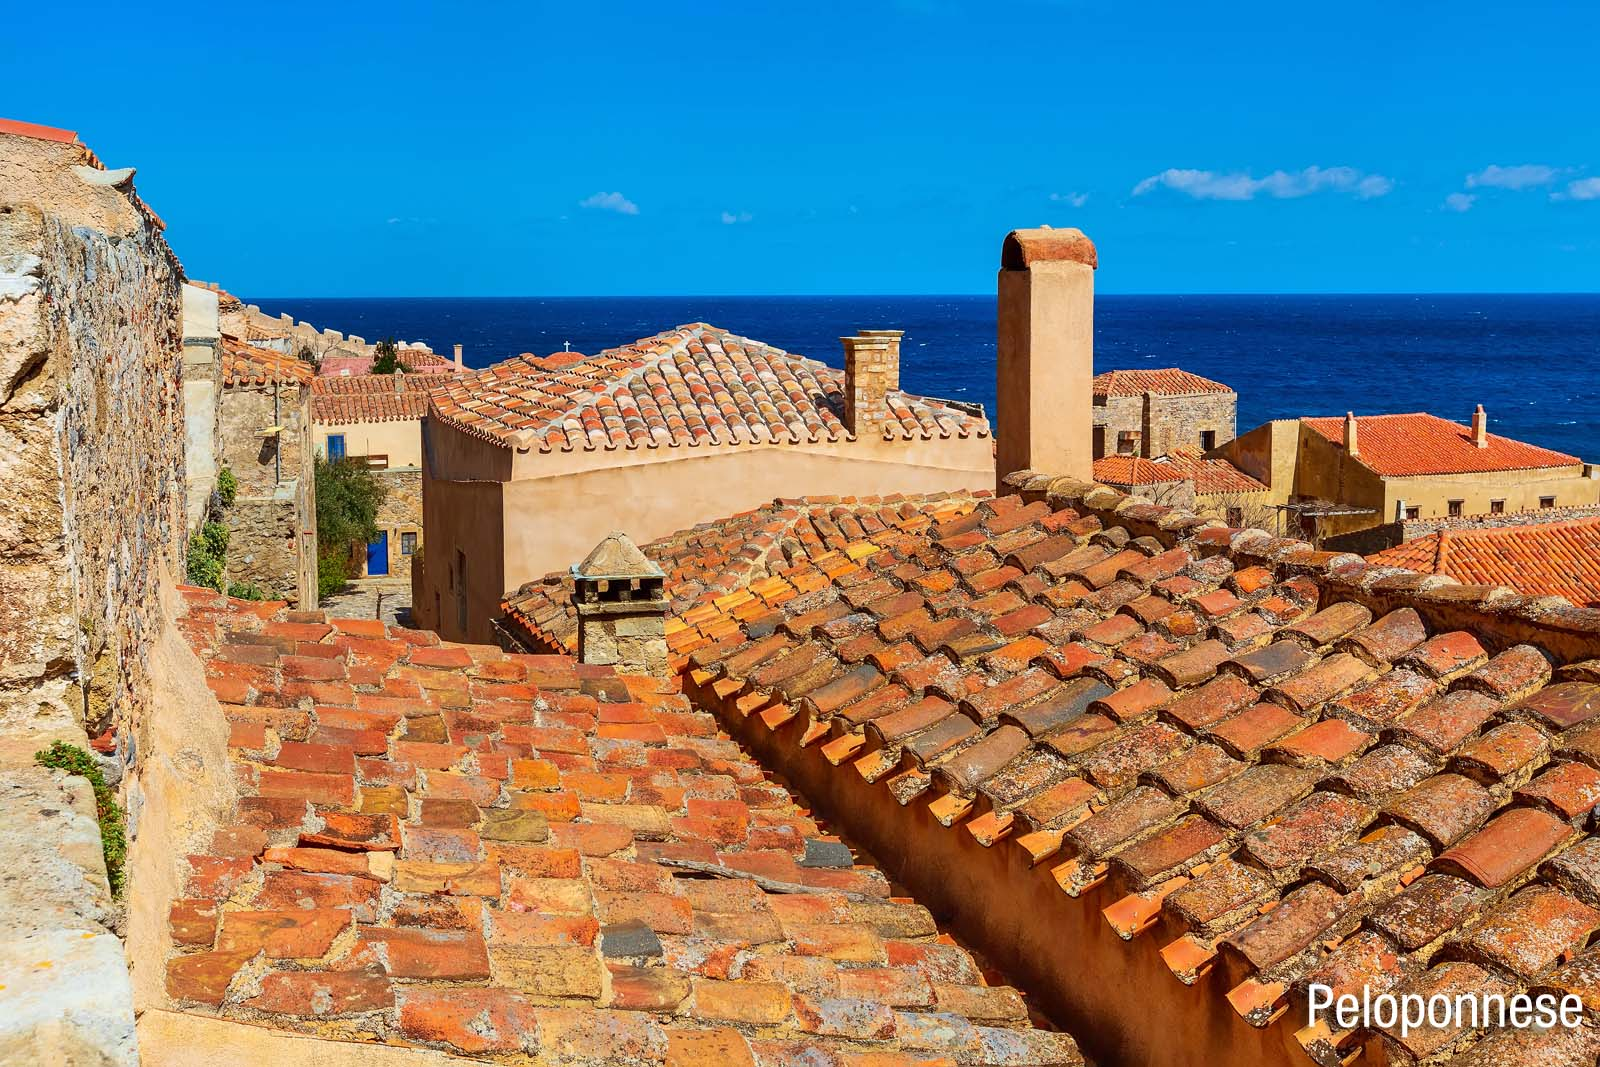 Enlarged - Rooftops of the Peloponnese Greece